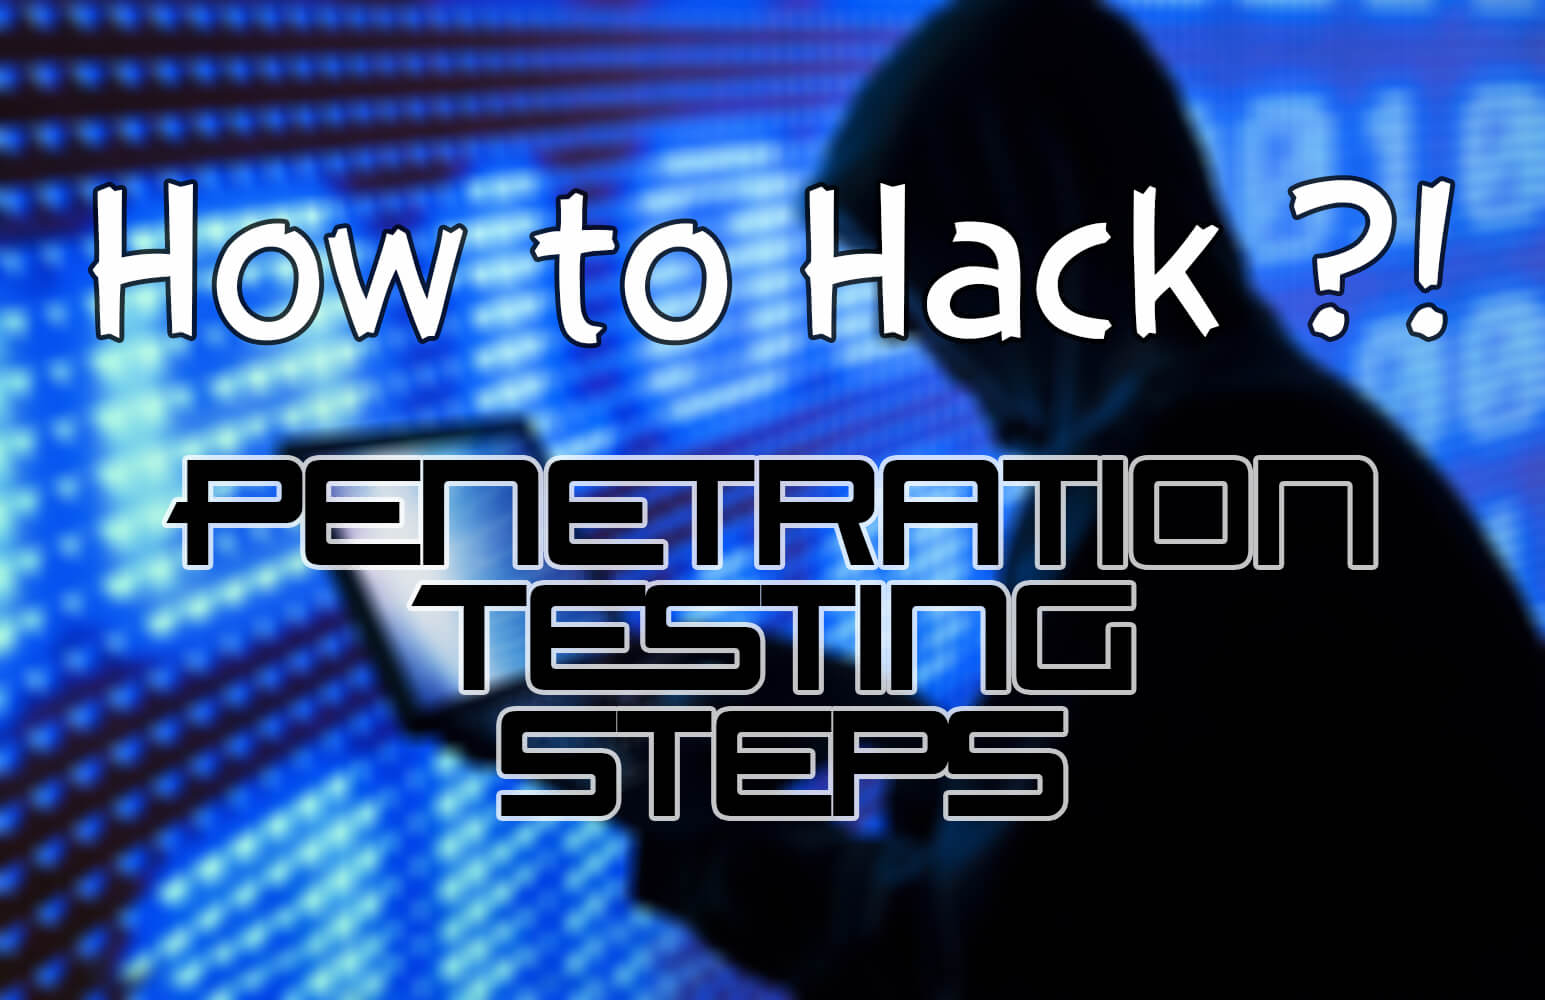 How to Hack: The Full Penetration Testing Process